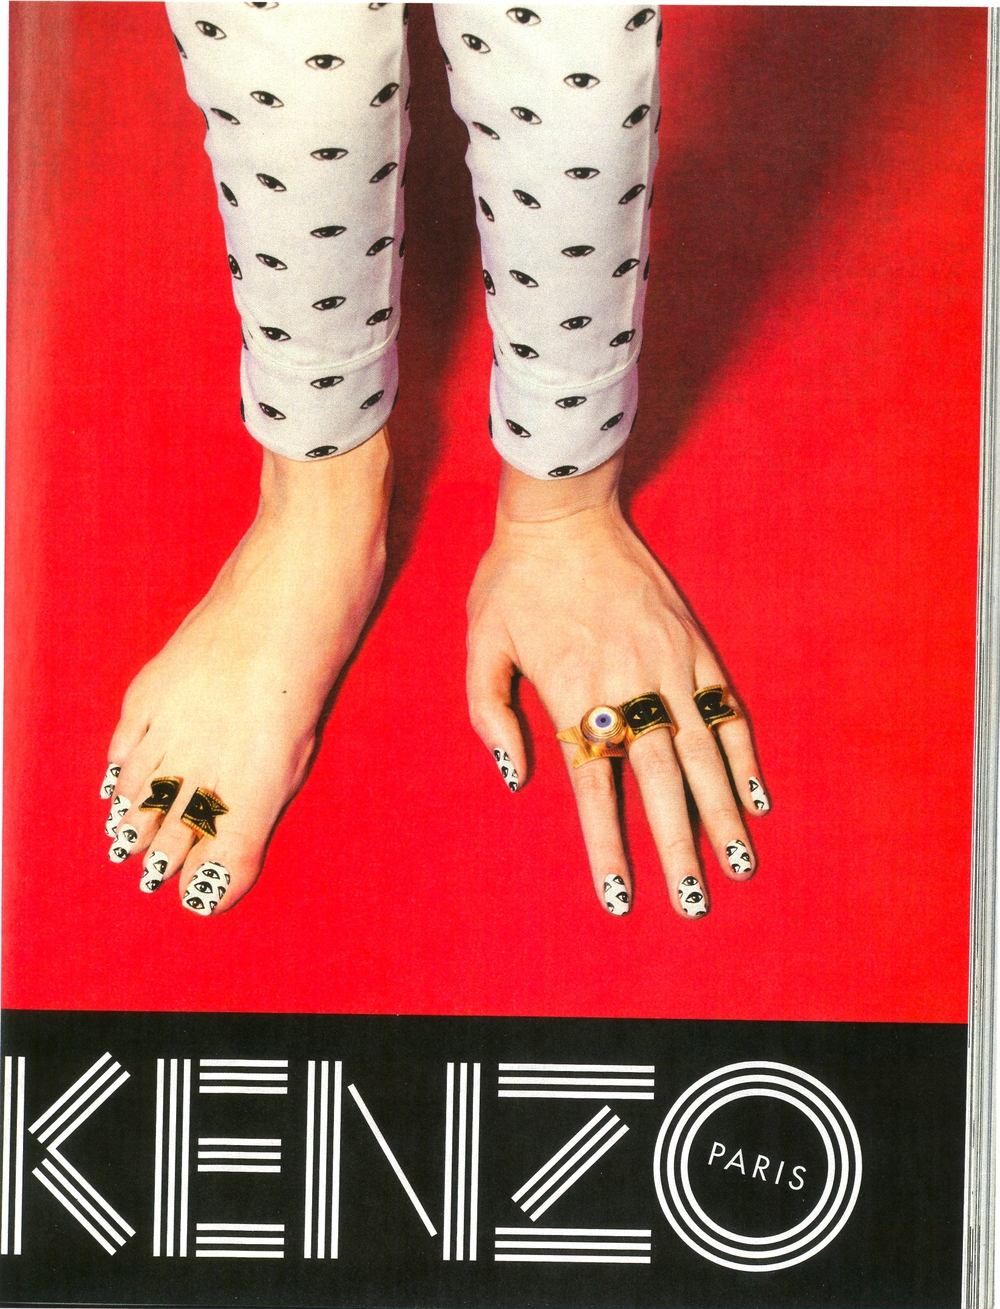 Kenzo has this beautiful eye print, and the new jewelry collection is stunning!